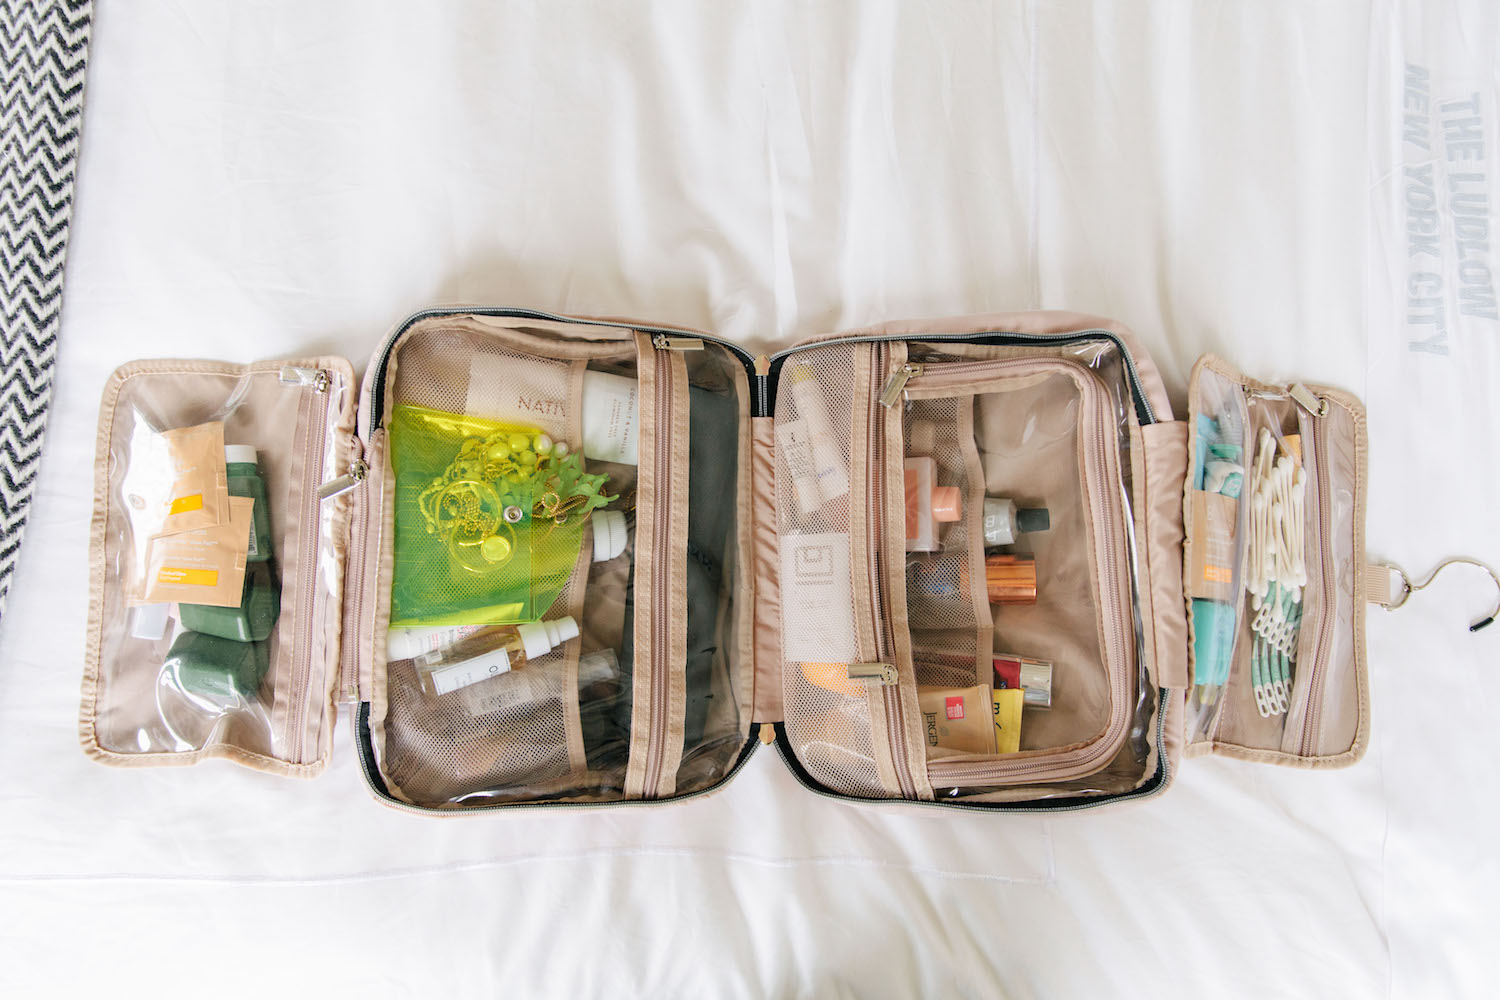 The Best Travel Bag for Toiletries